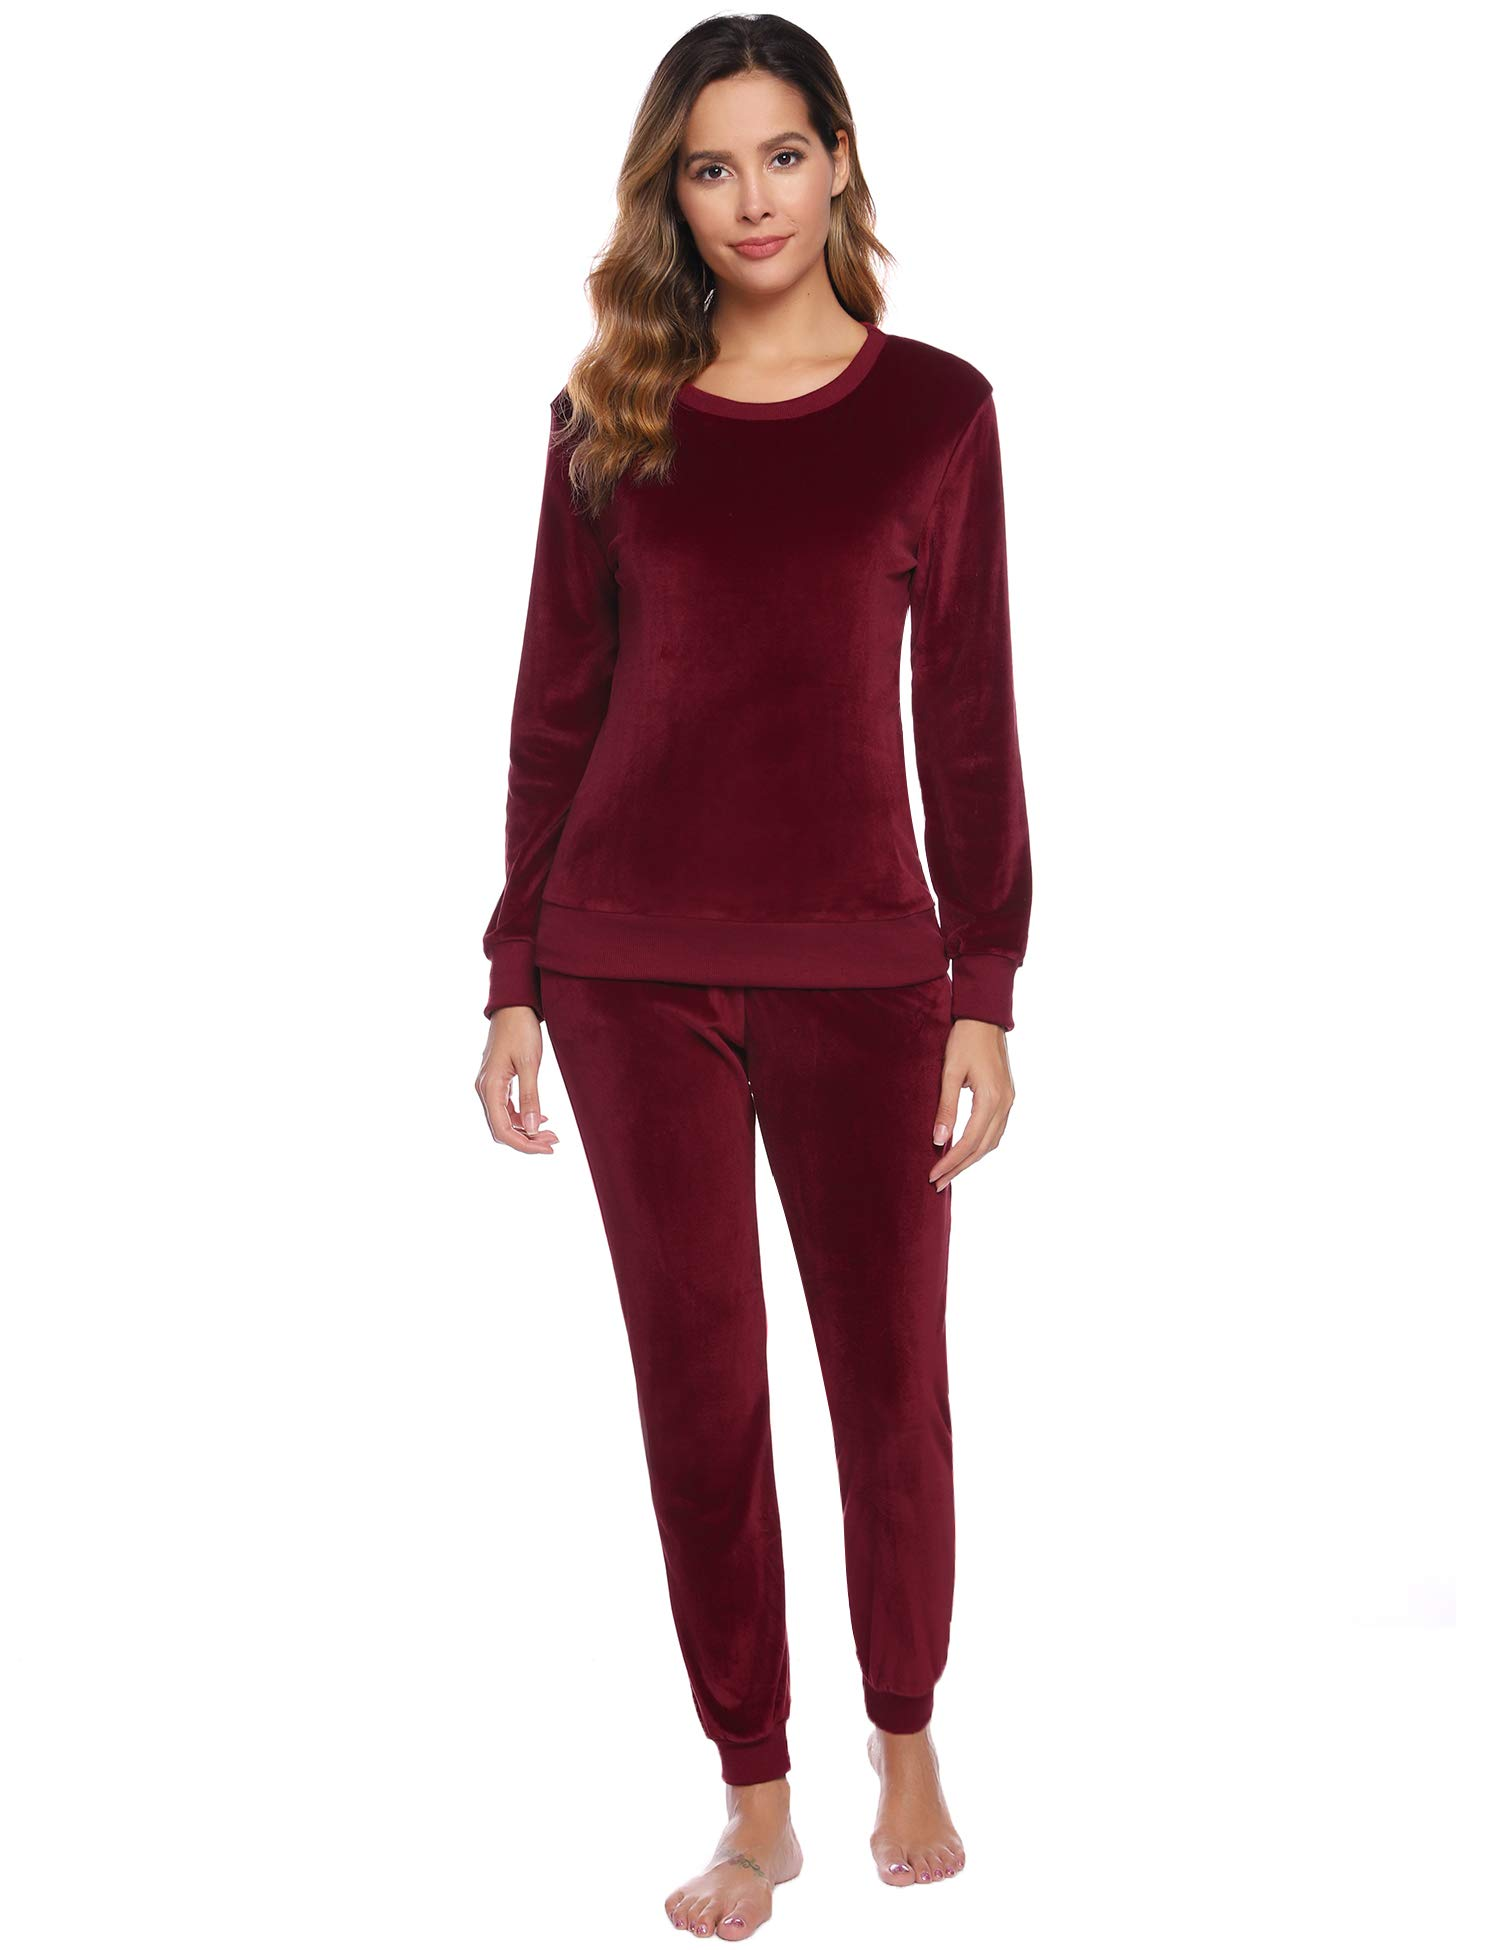 Abollria Women's Solid Velour Sweatsuit Set Sport Suits Tracksuits Wine Red by Abollria